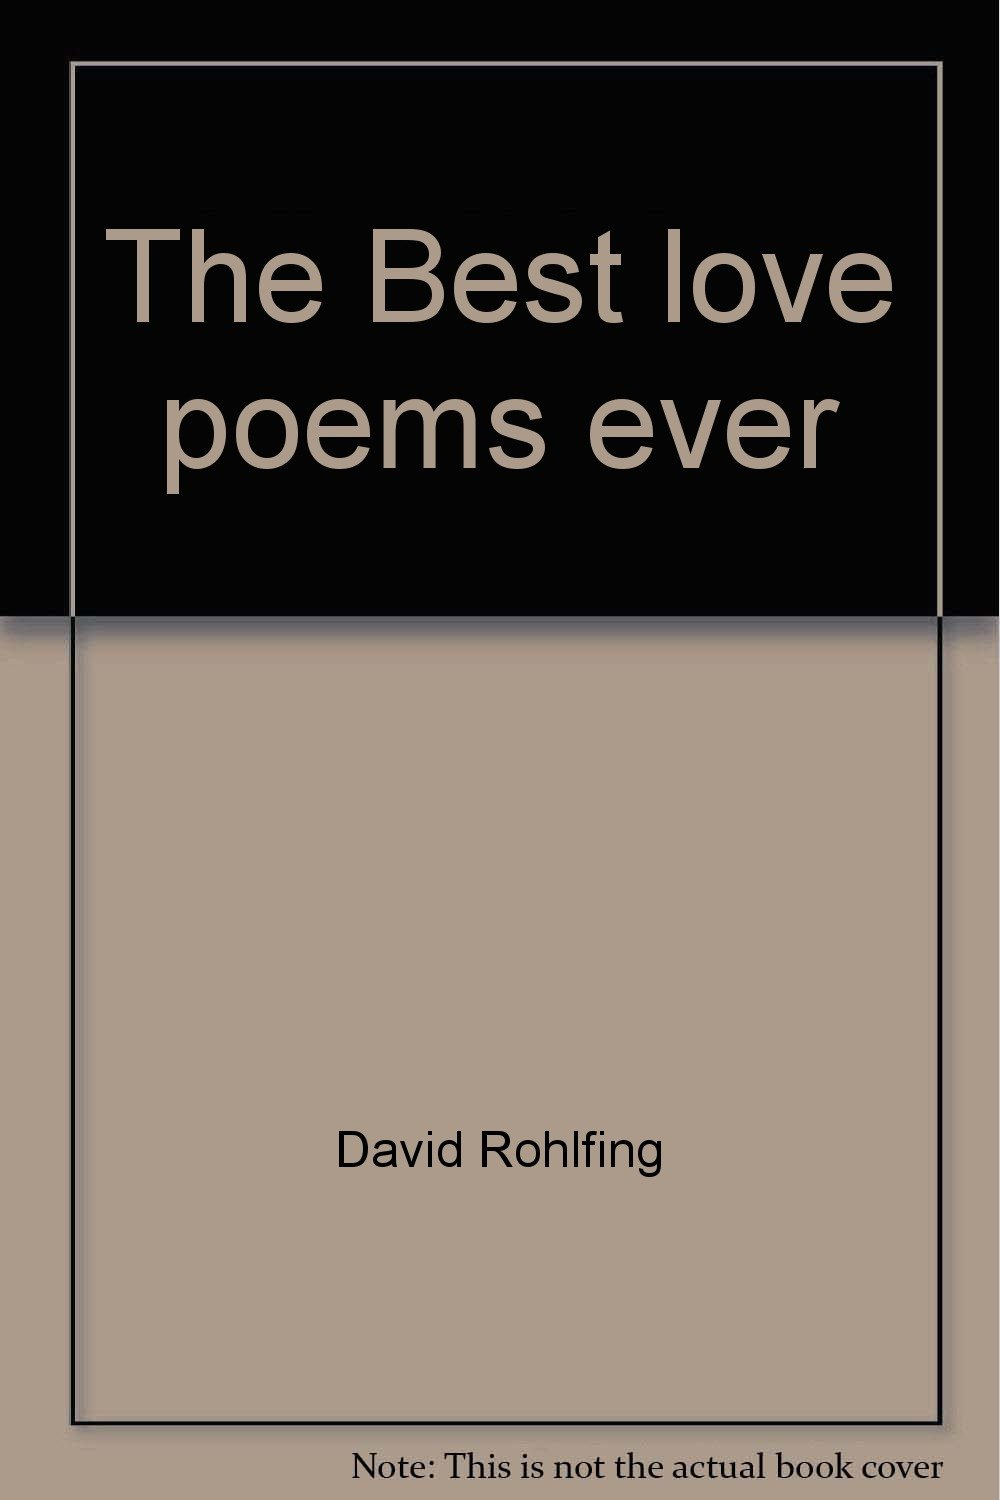 The Best love poems ever: A collection of poetry's most romantic voices (Scholastic classics) ebook